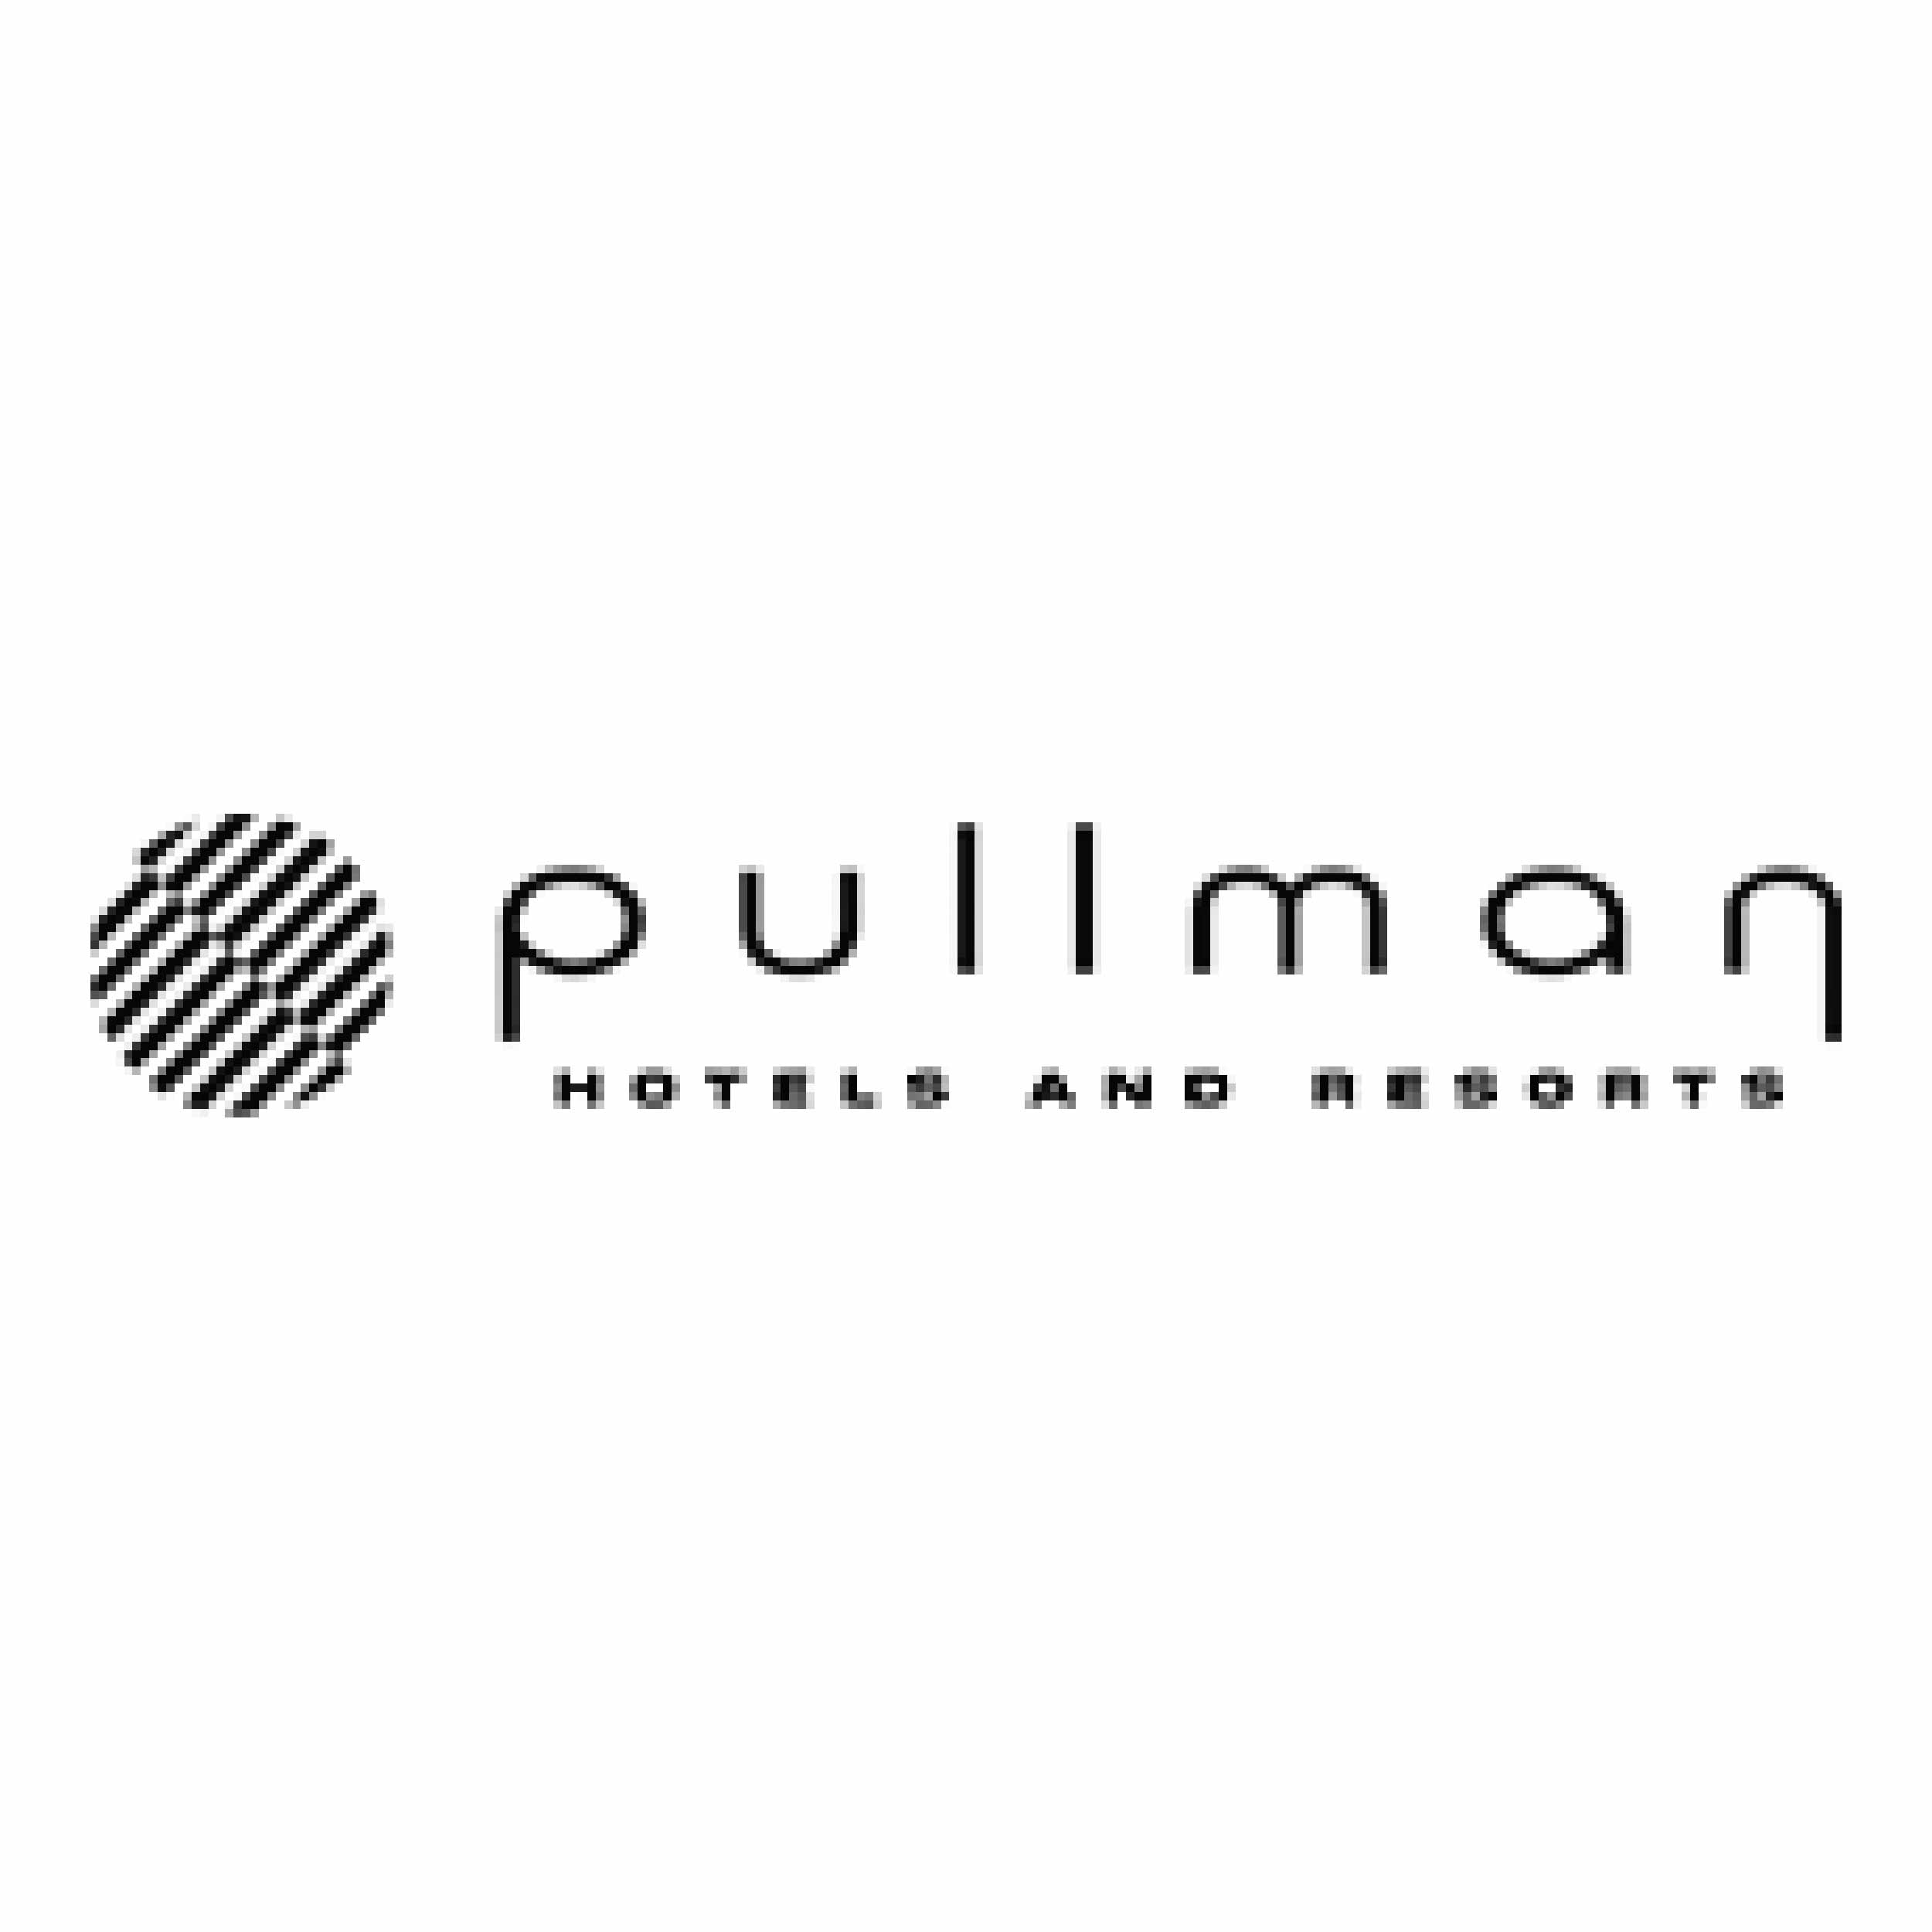 Pullman Hotel and Resorts